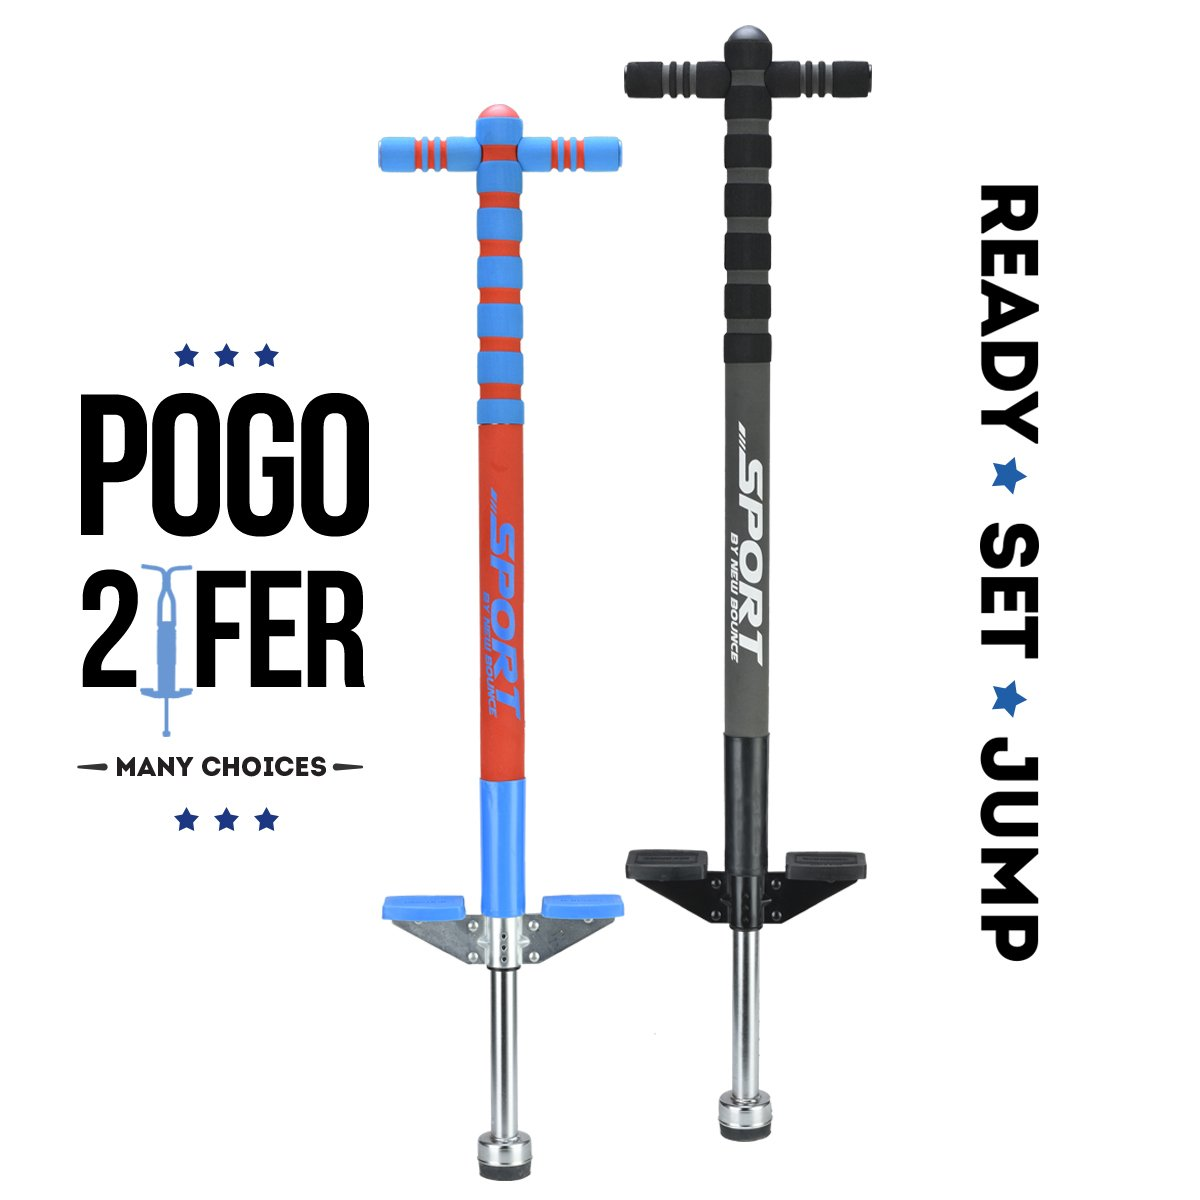 New Bounce Soft, Easy Grip Sport Pogo Stick- 2 Pack Combo Set by New Bounce